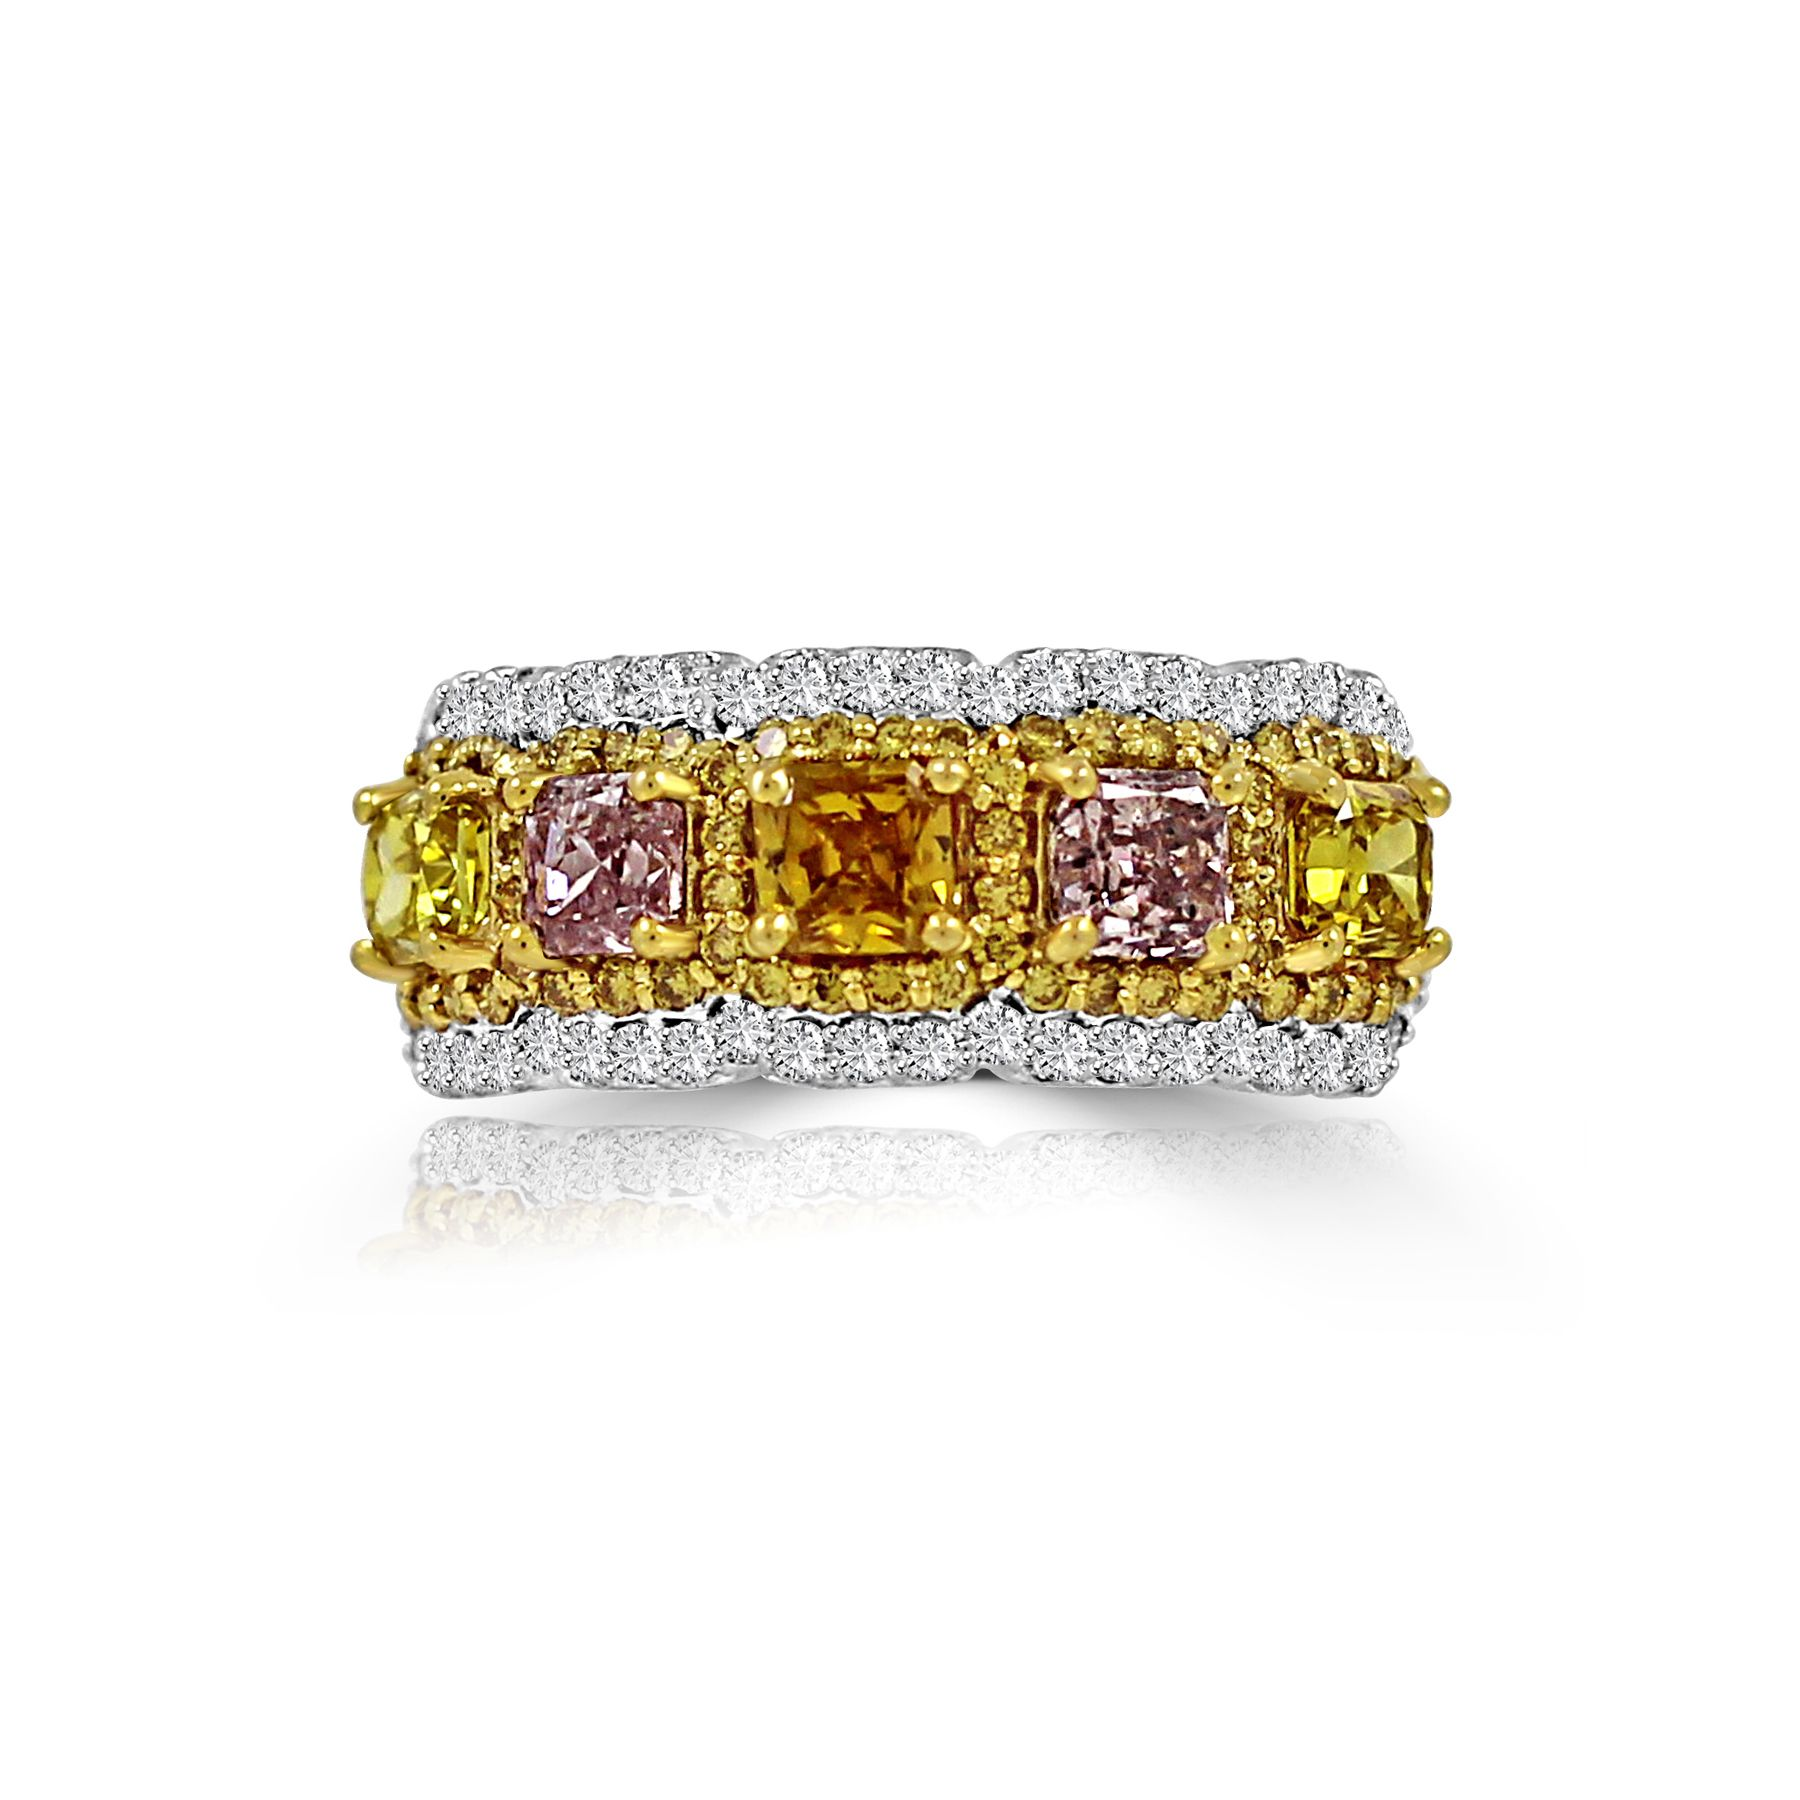 Colorstar Fancy Color Diamond Ring